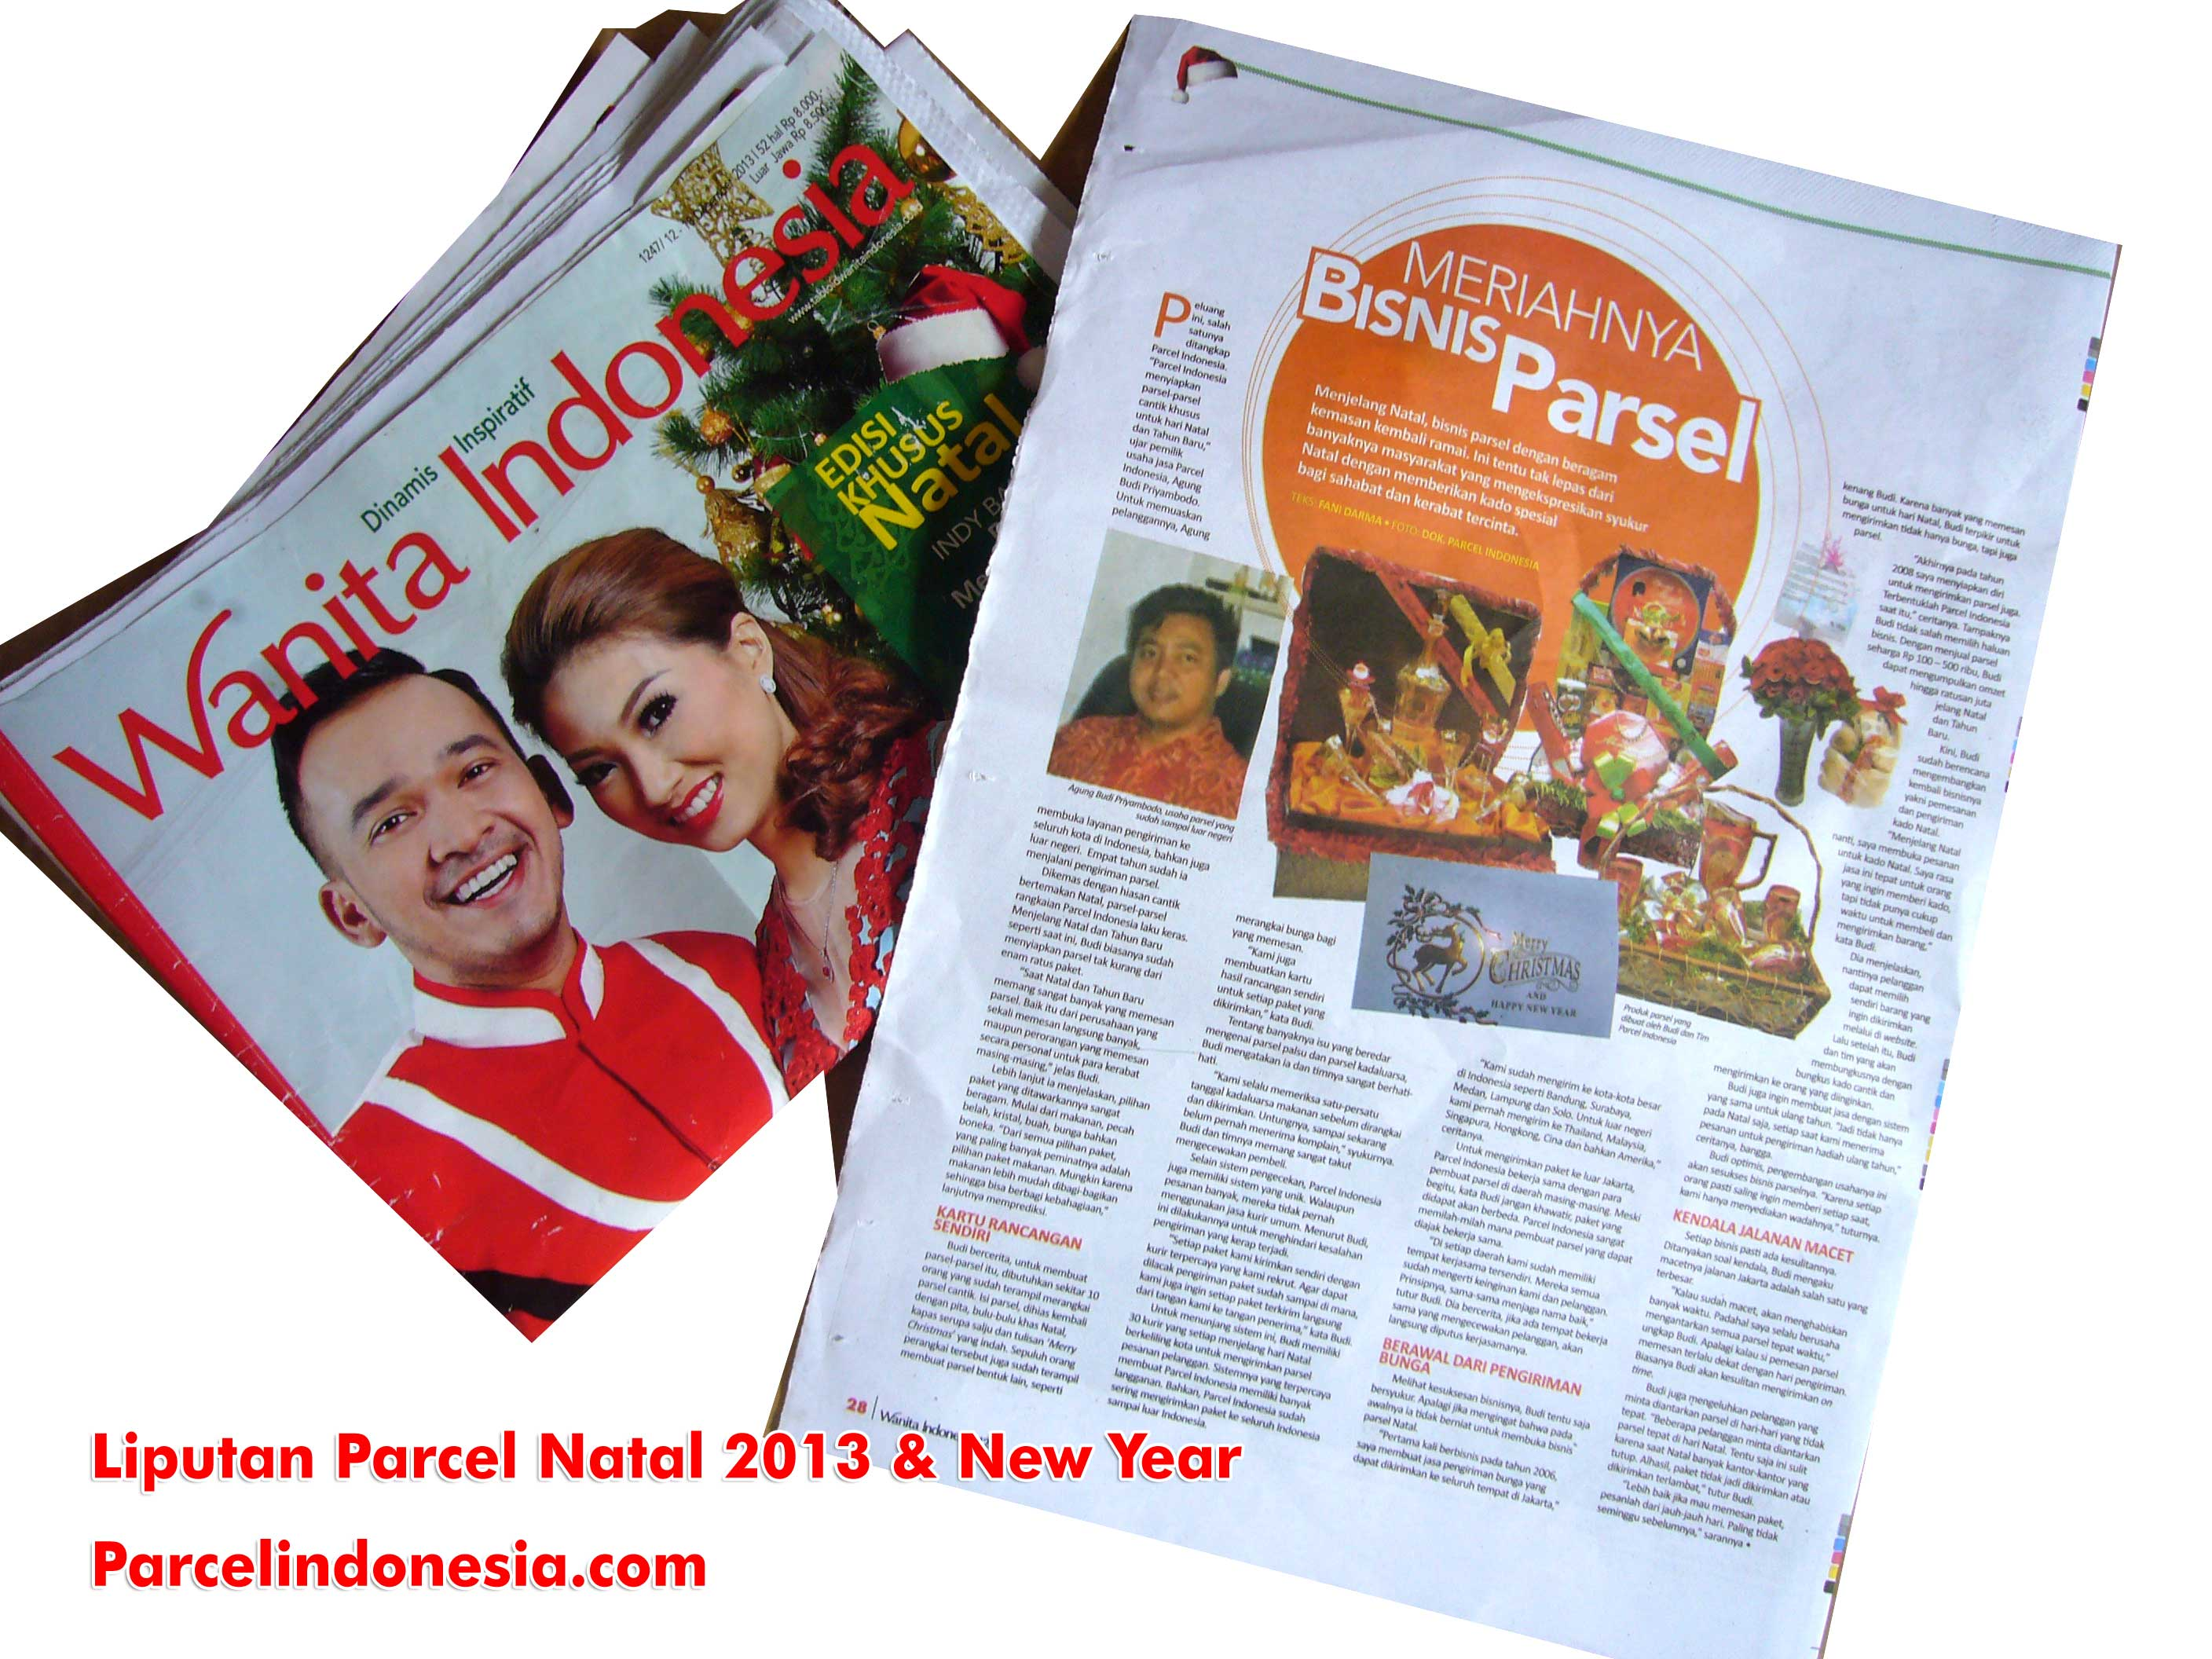 liputan parcel natal 2013 tabloid wanita indonesia